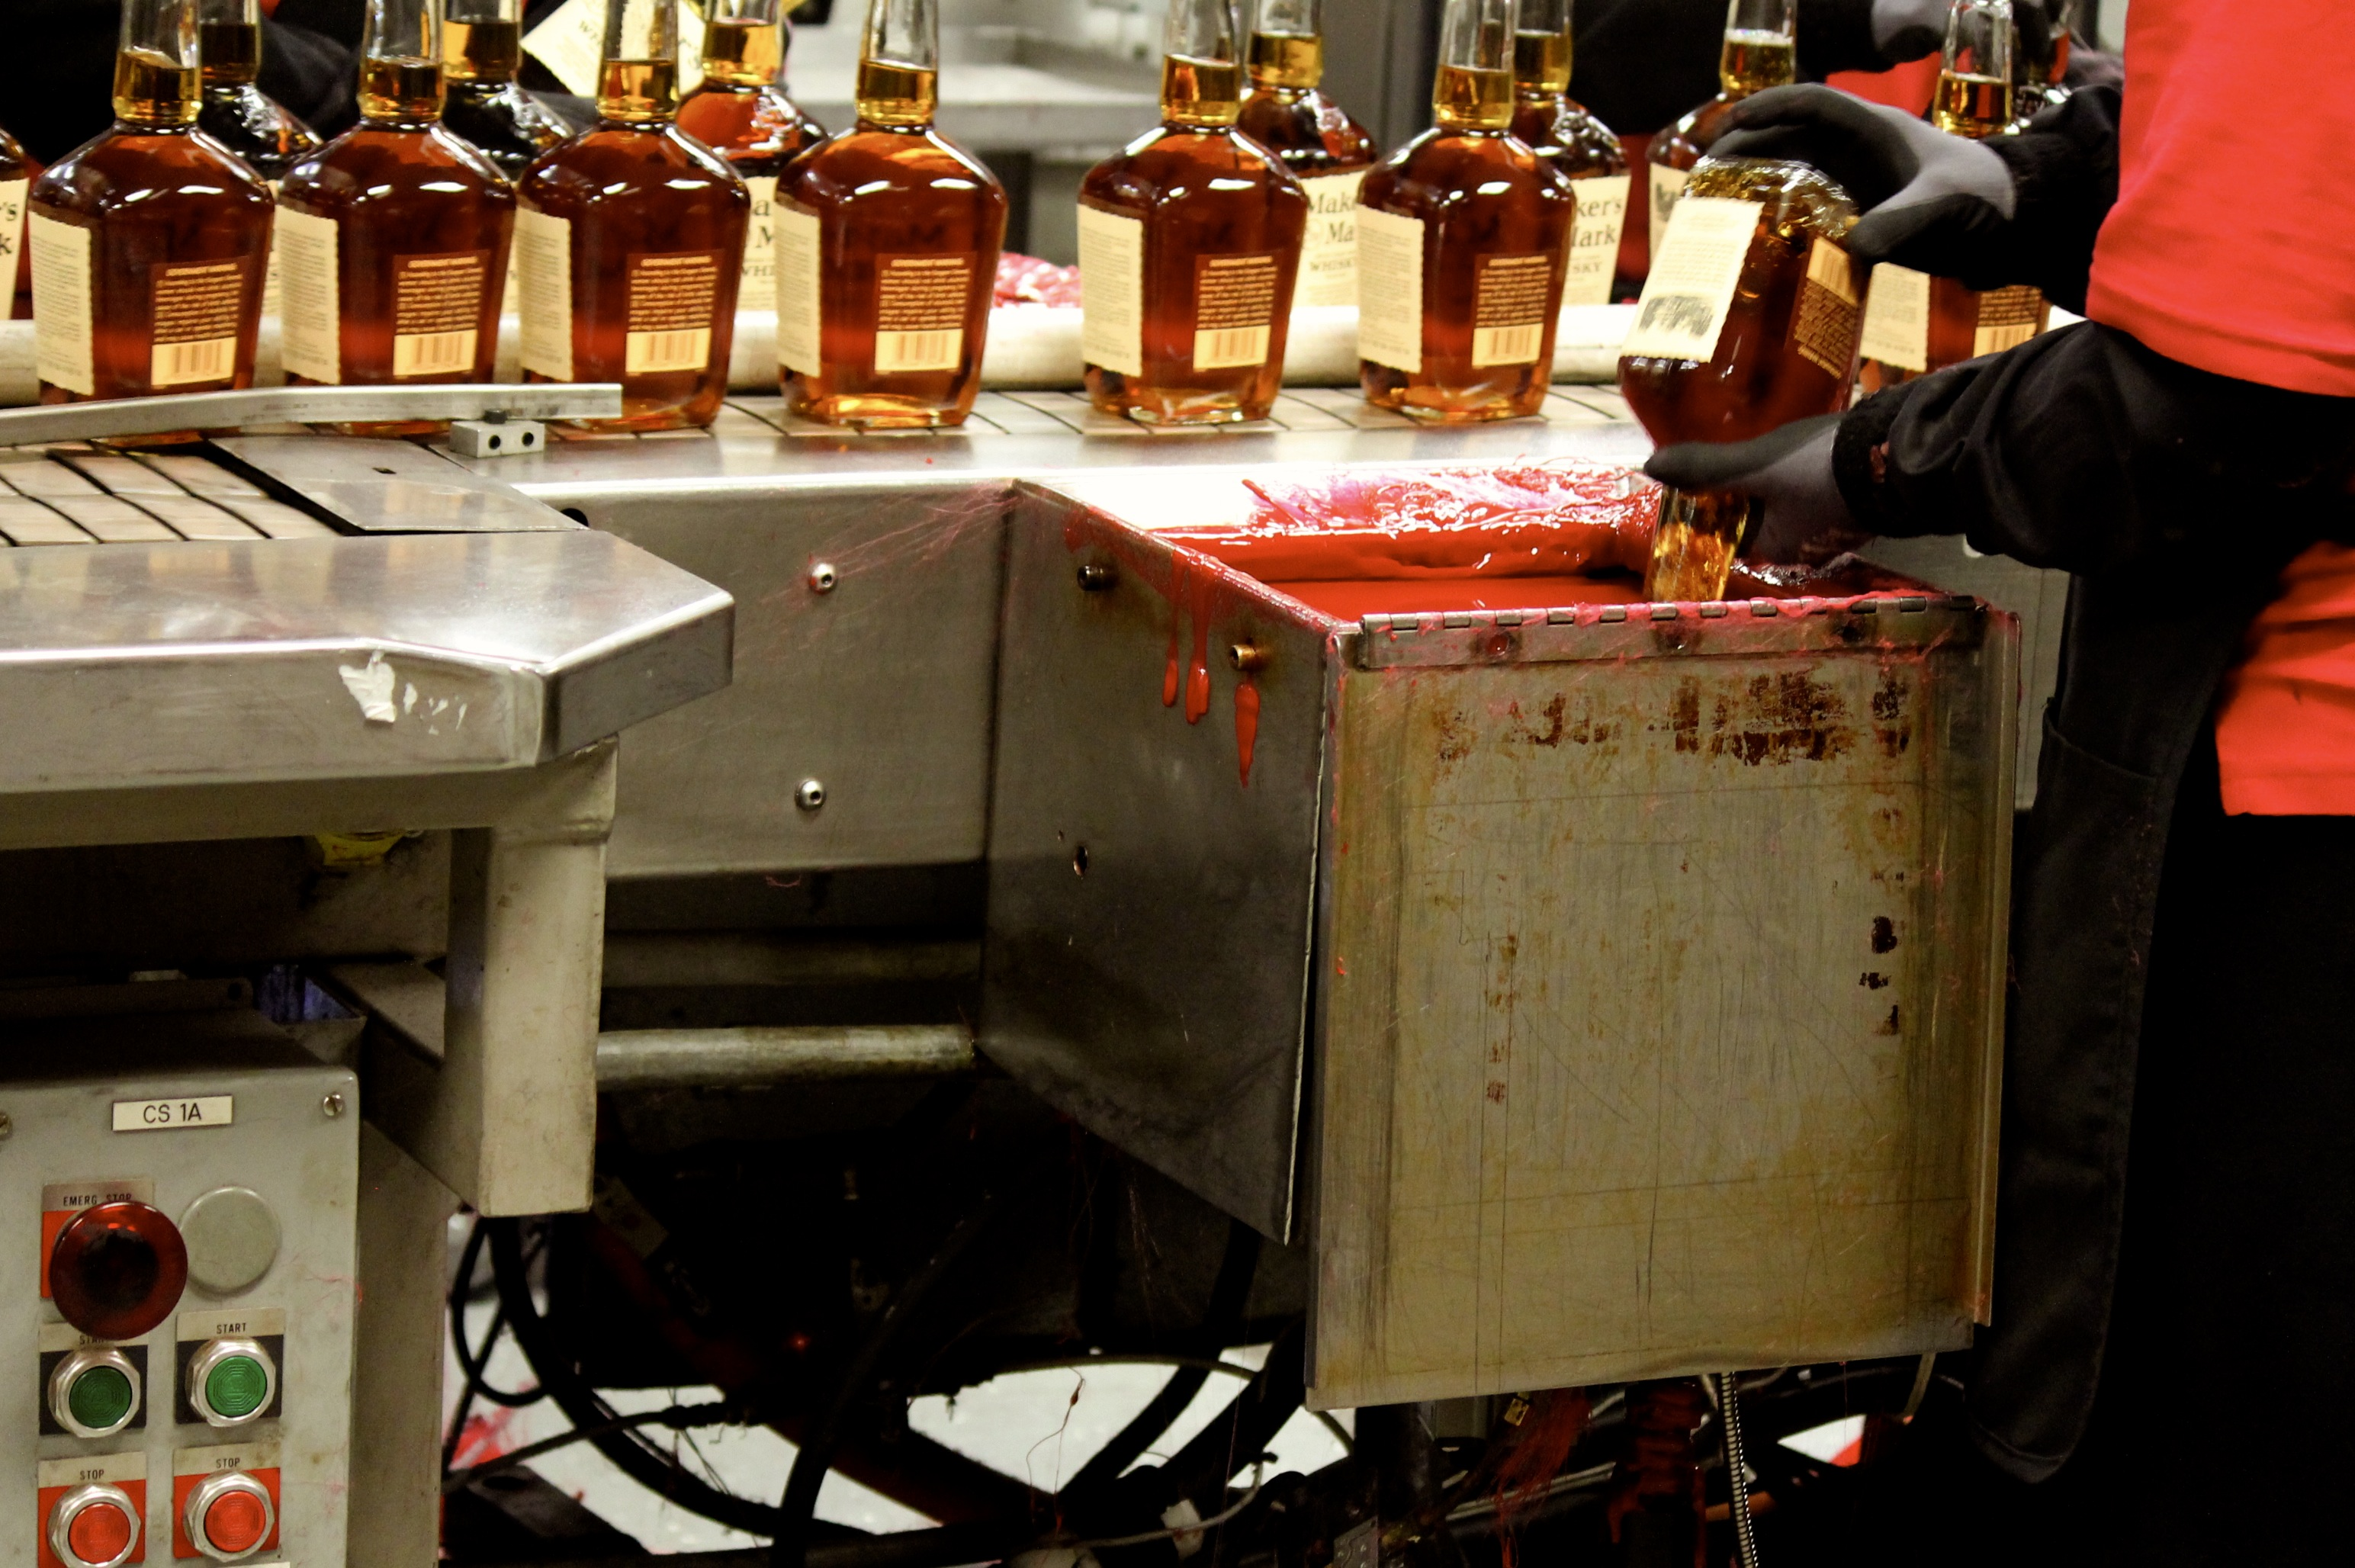 Maker's Mark Factory Tour